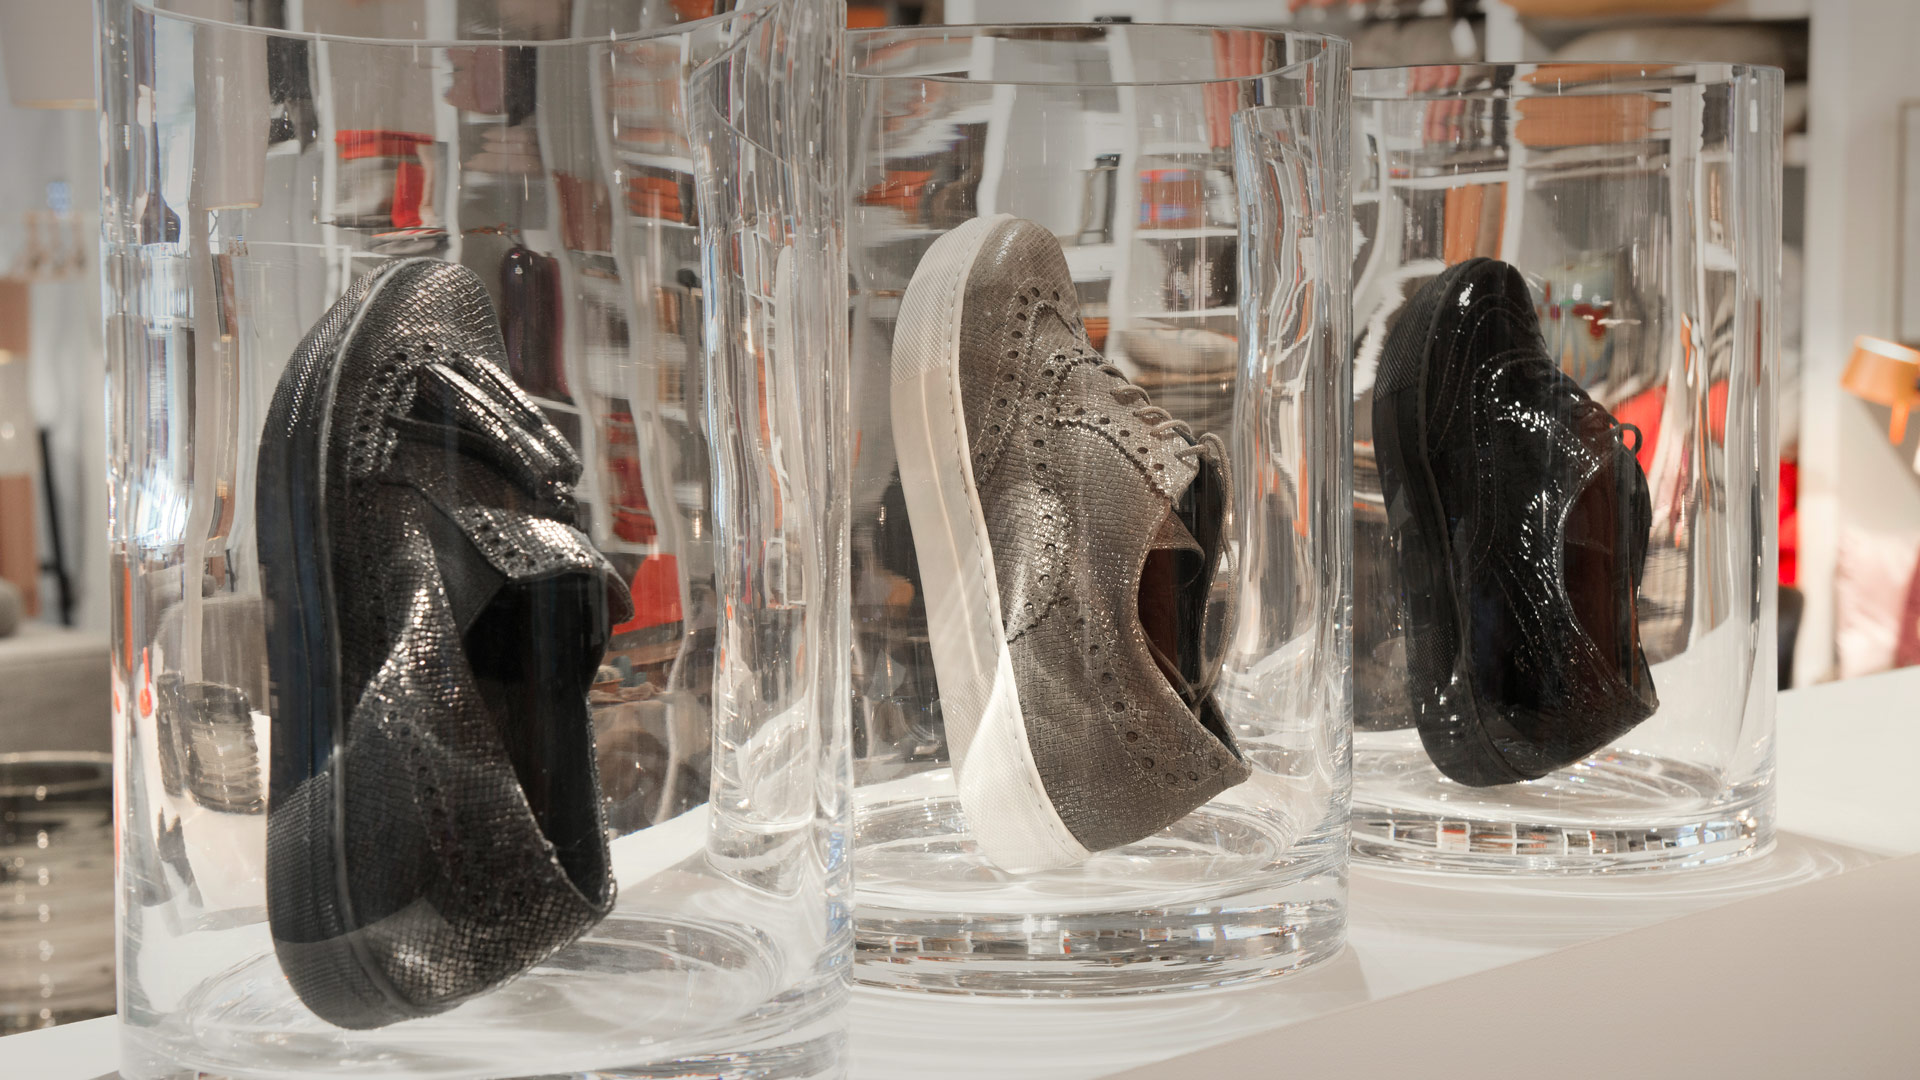 You can show in the autumn window display that the shoes you sell are appropriate for the weather, by placing them in huge water glasses. This may be suggestive for water proof.